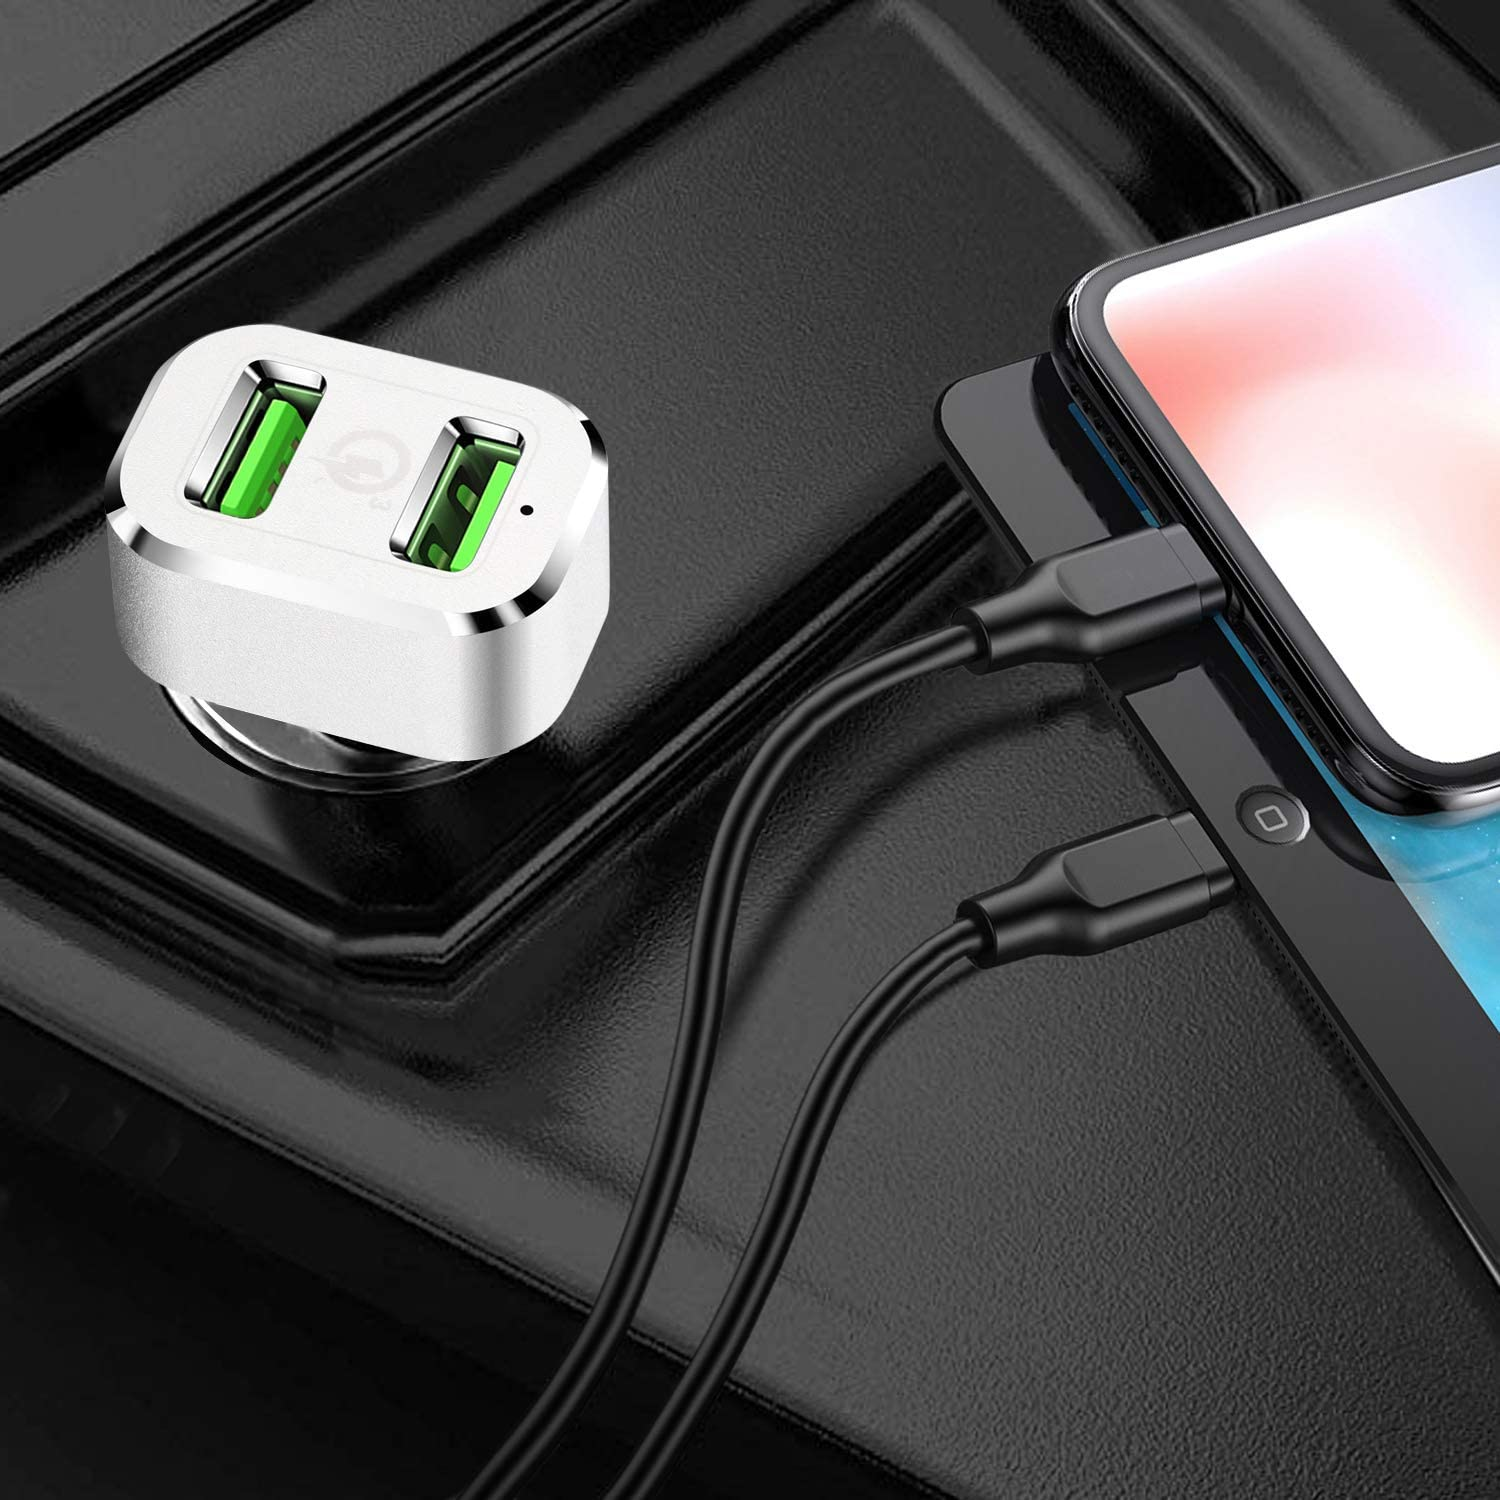 OrxnQ Car Charger 36W Quick Charge 3.0 Adapter Fast Dual USB Port QC3.0 Car Charger Compatible for iPhone X Xs XR Xs Max 8 7 6 6s 8Plus Galaxy s10 S9 Plus